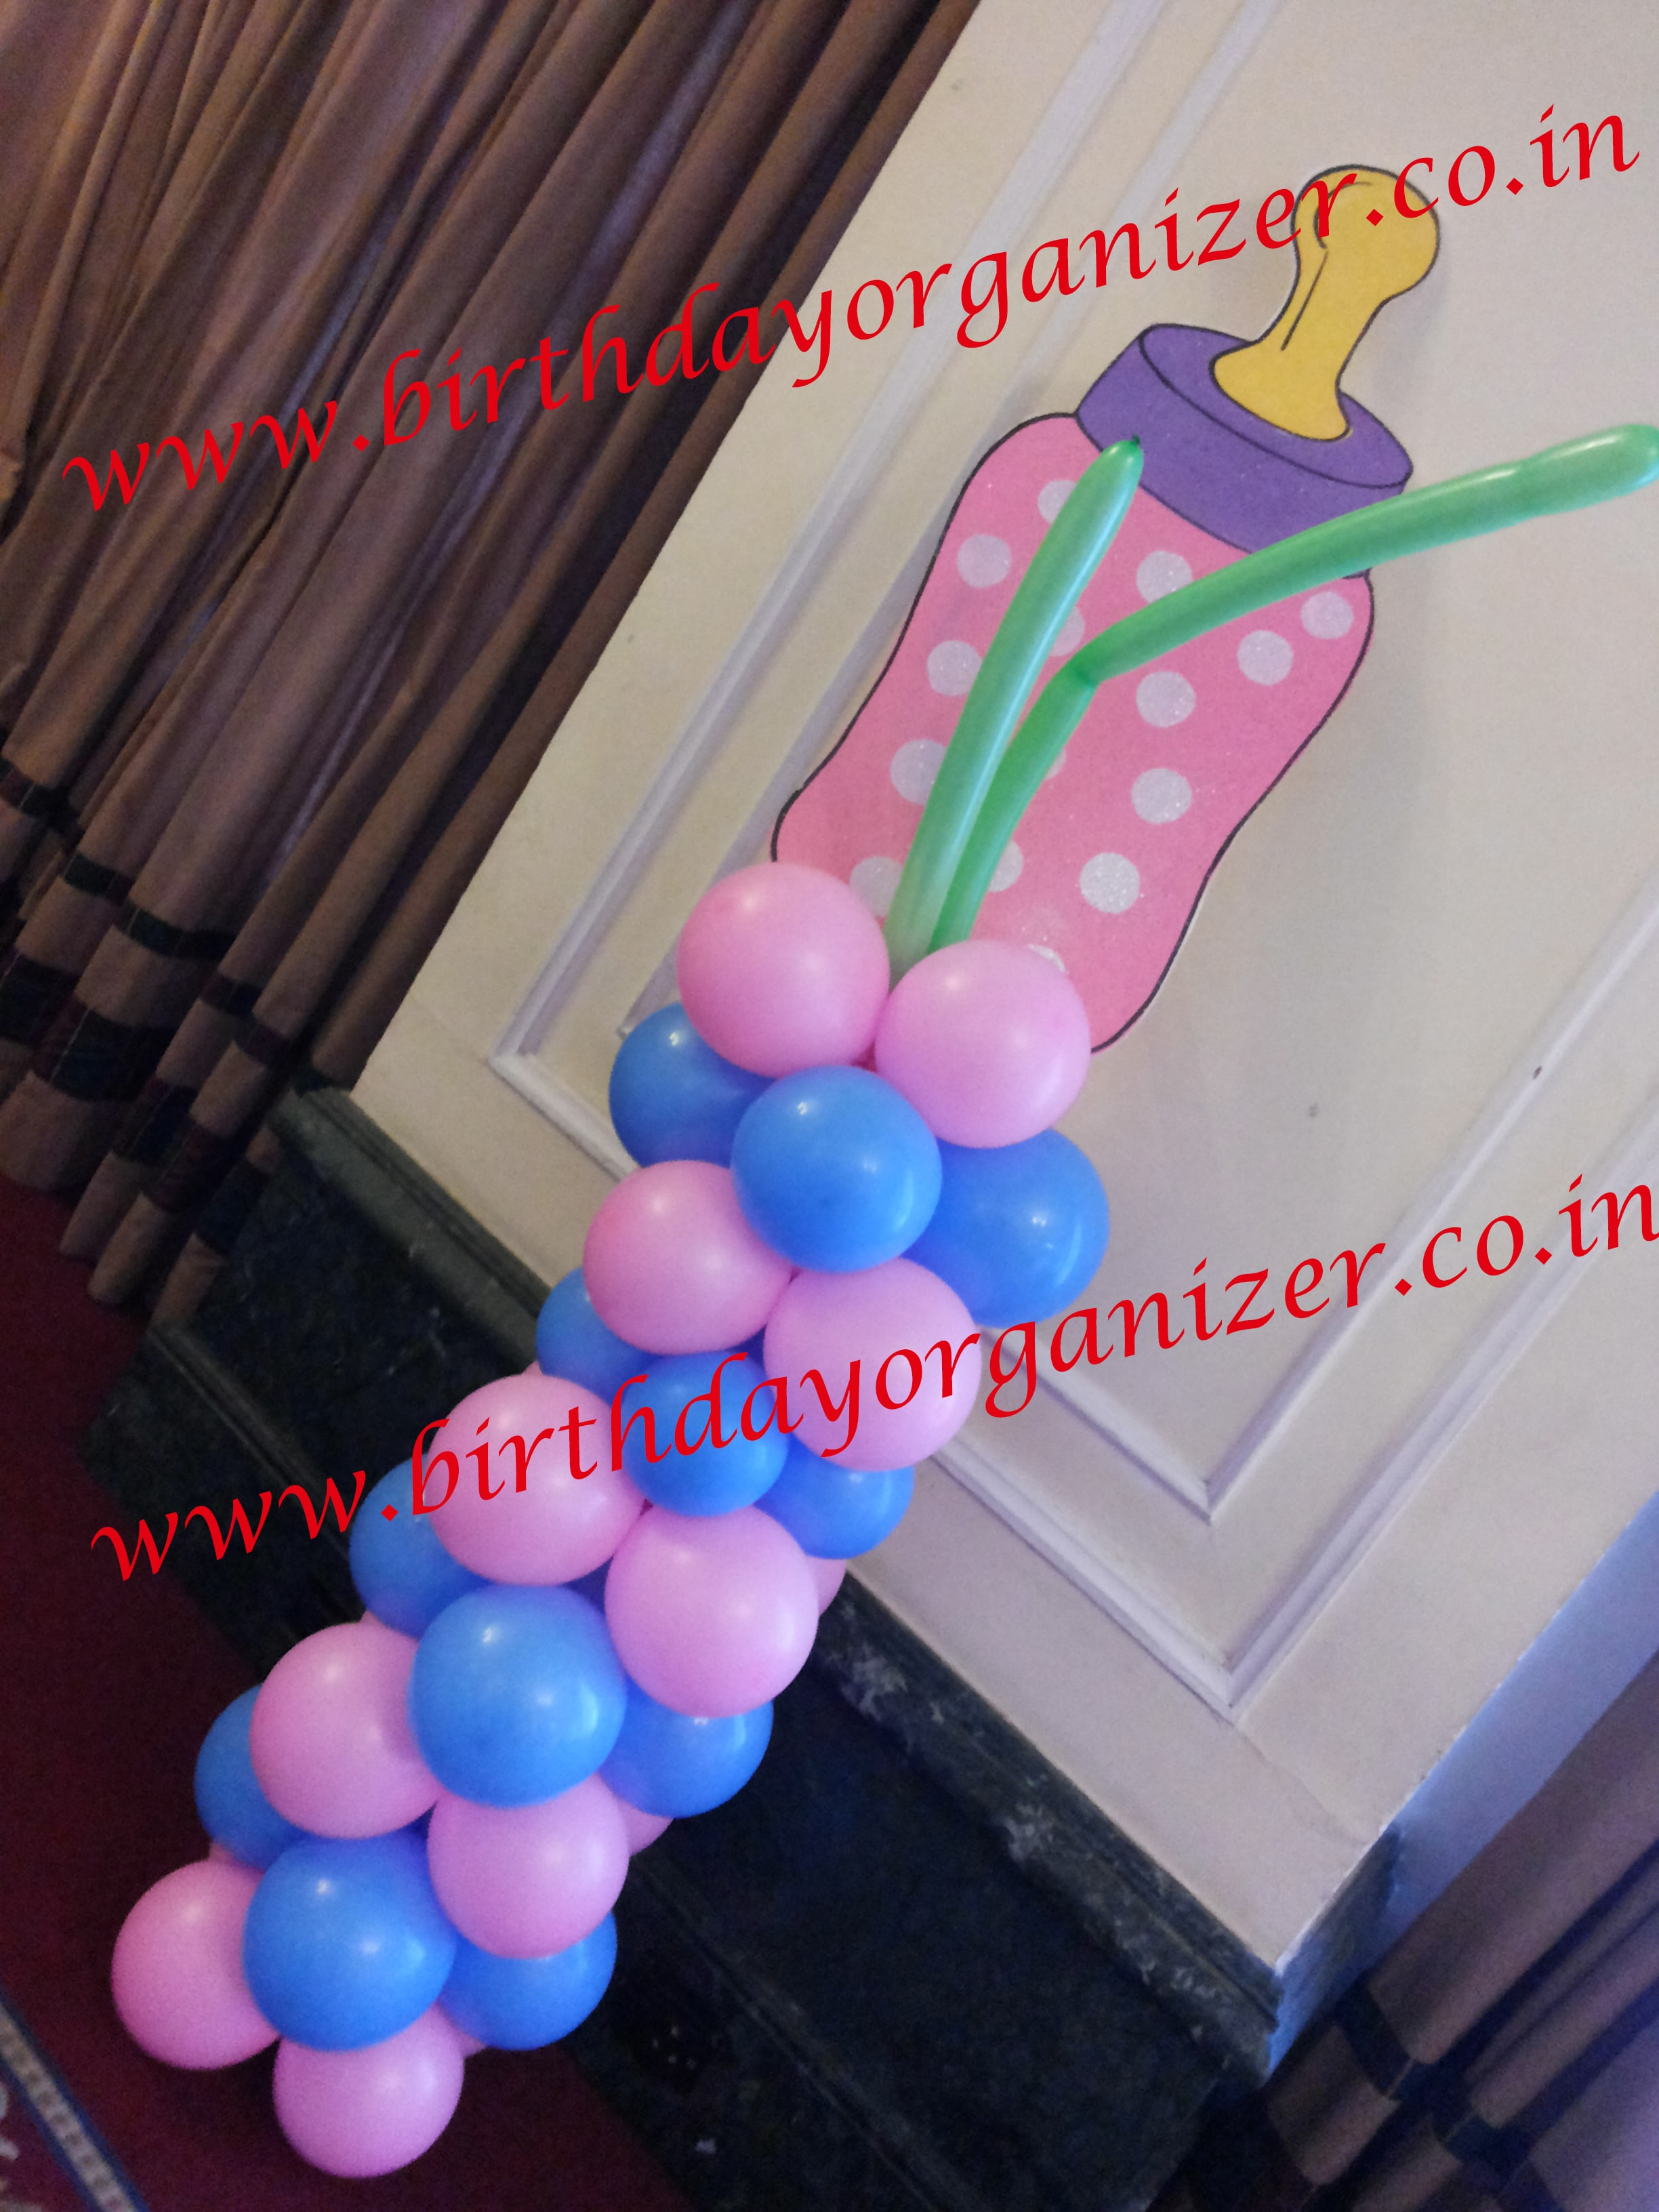 Baby shower party planner in noida, Baby shower party planner in delhi, Baby shower party planner in gurgaon